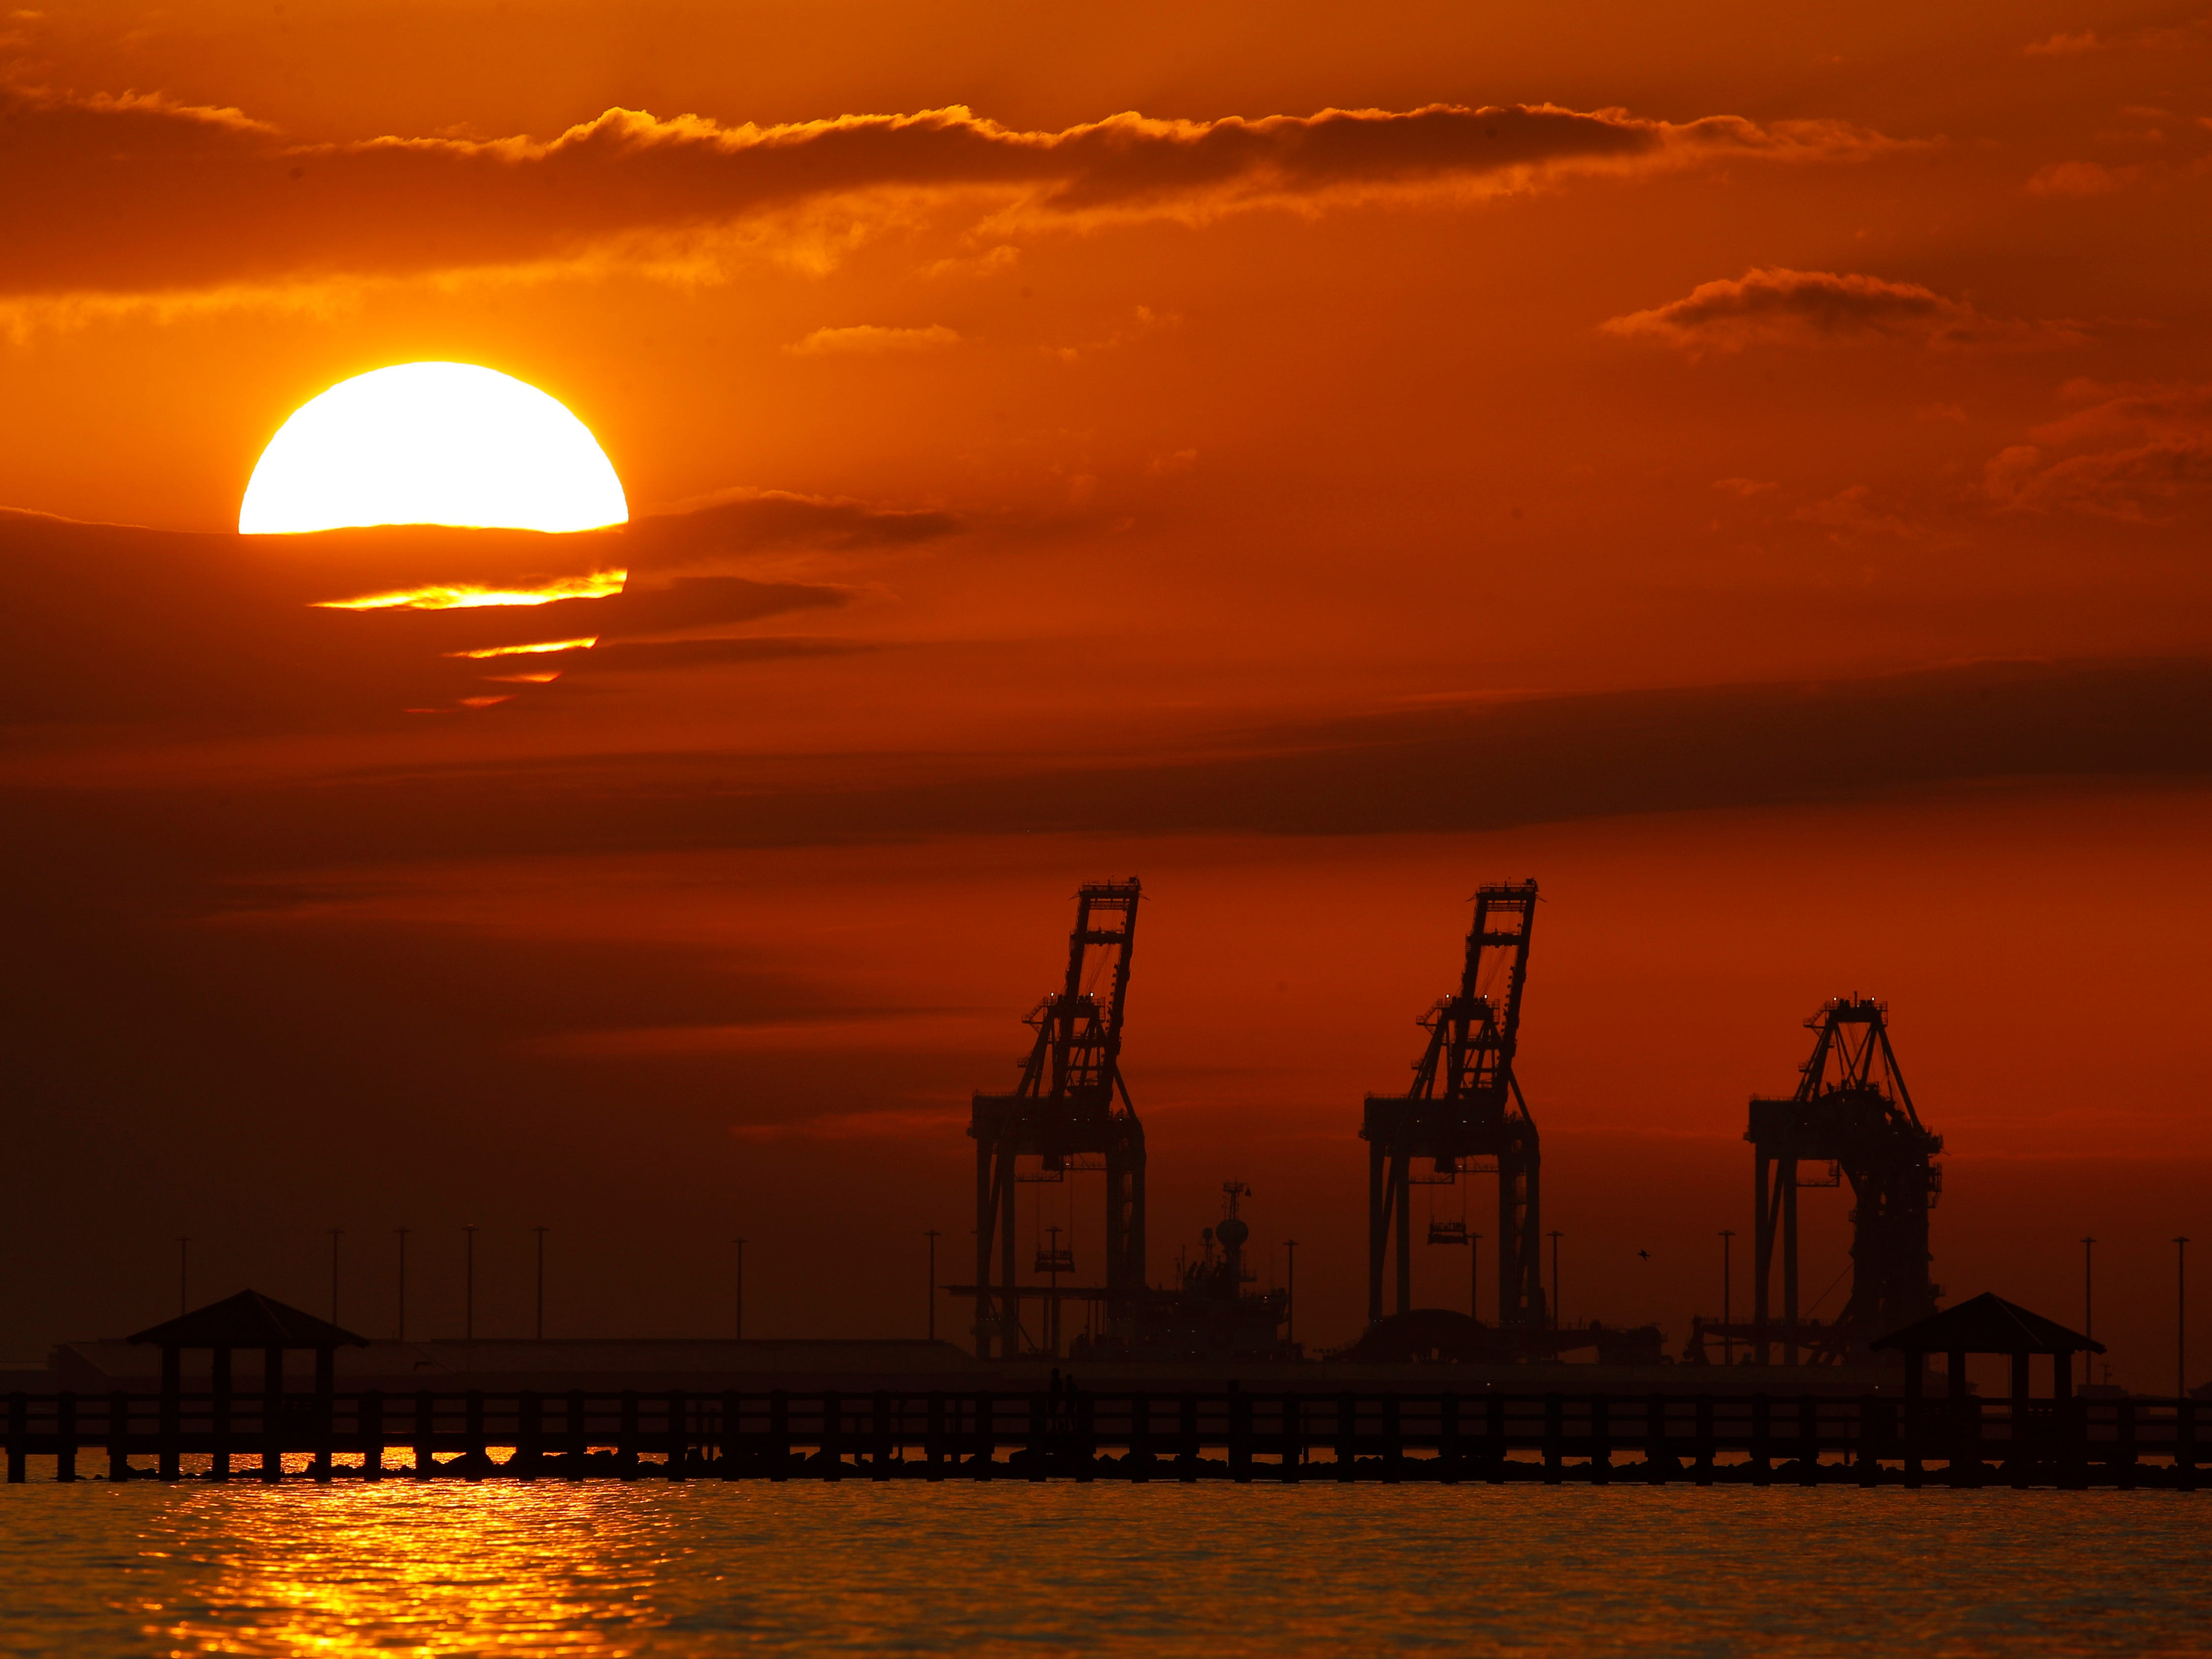 Cranes at the Port of Gulfport are silhouetted by the setting sun Sunday, Dec. 2, 2018, at Gulfport, Miss.